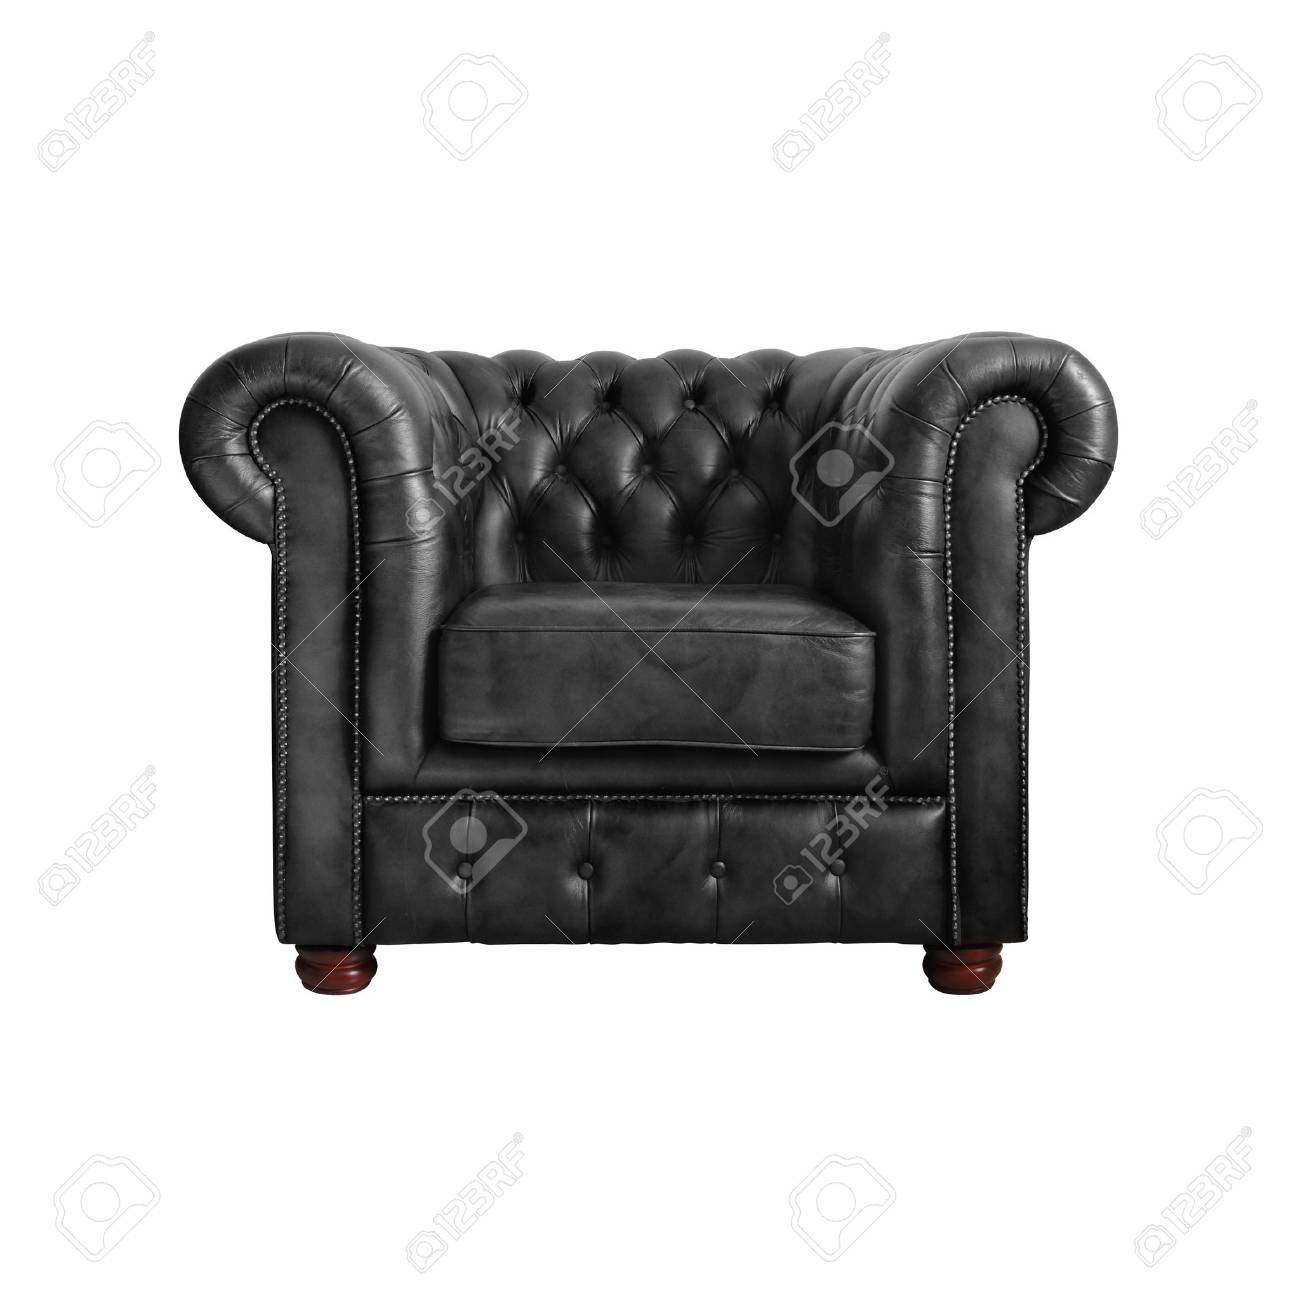 Bon Classic Black Leather Armchair Isolated On White Background Stock Photo    12801519